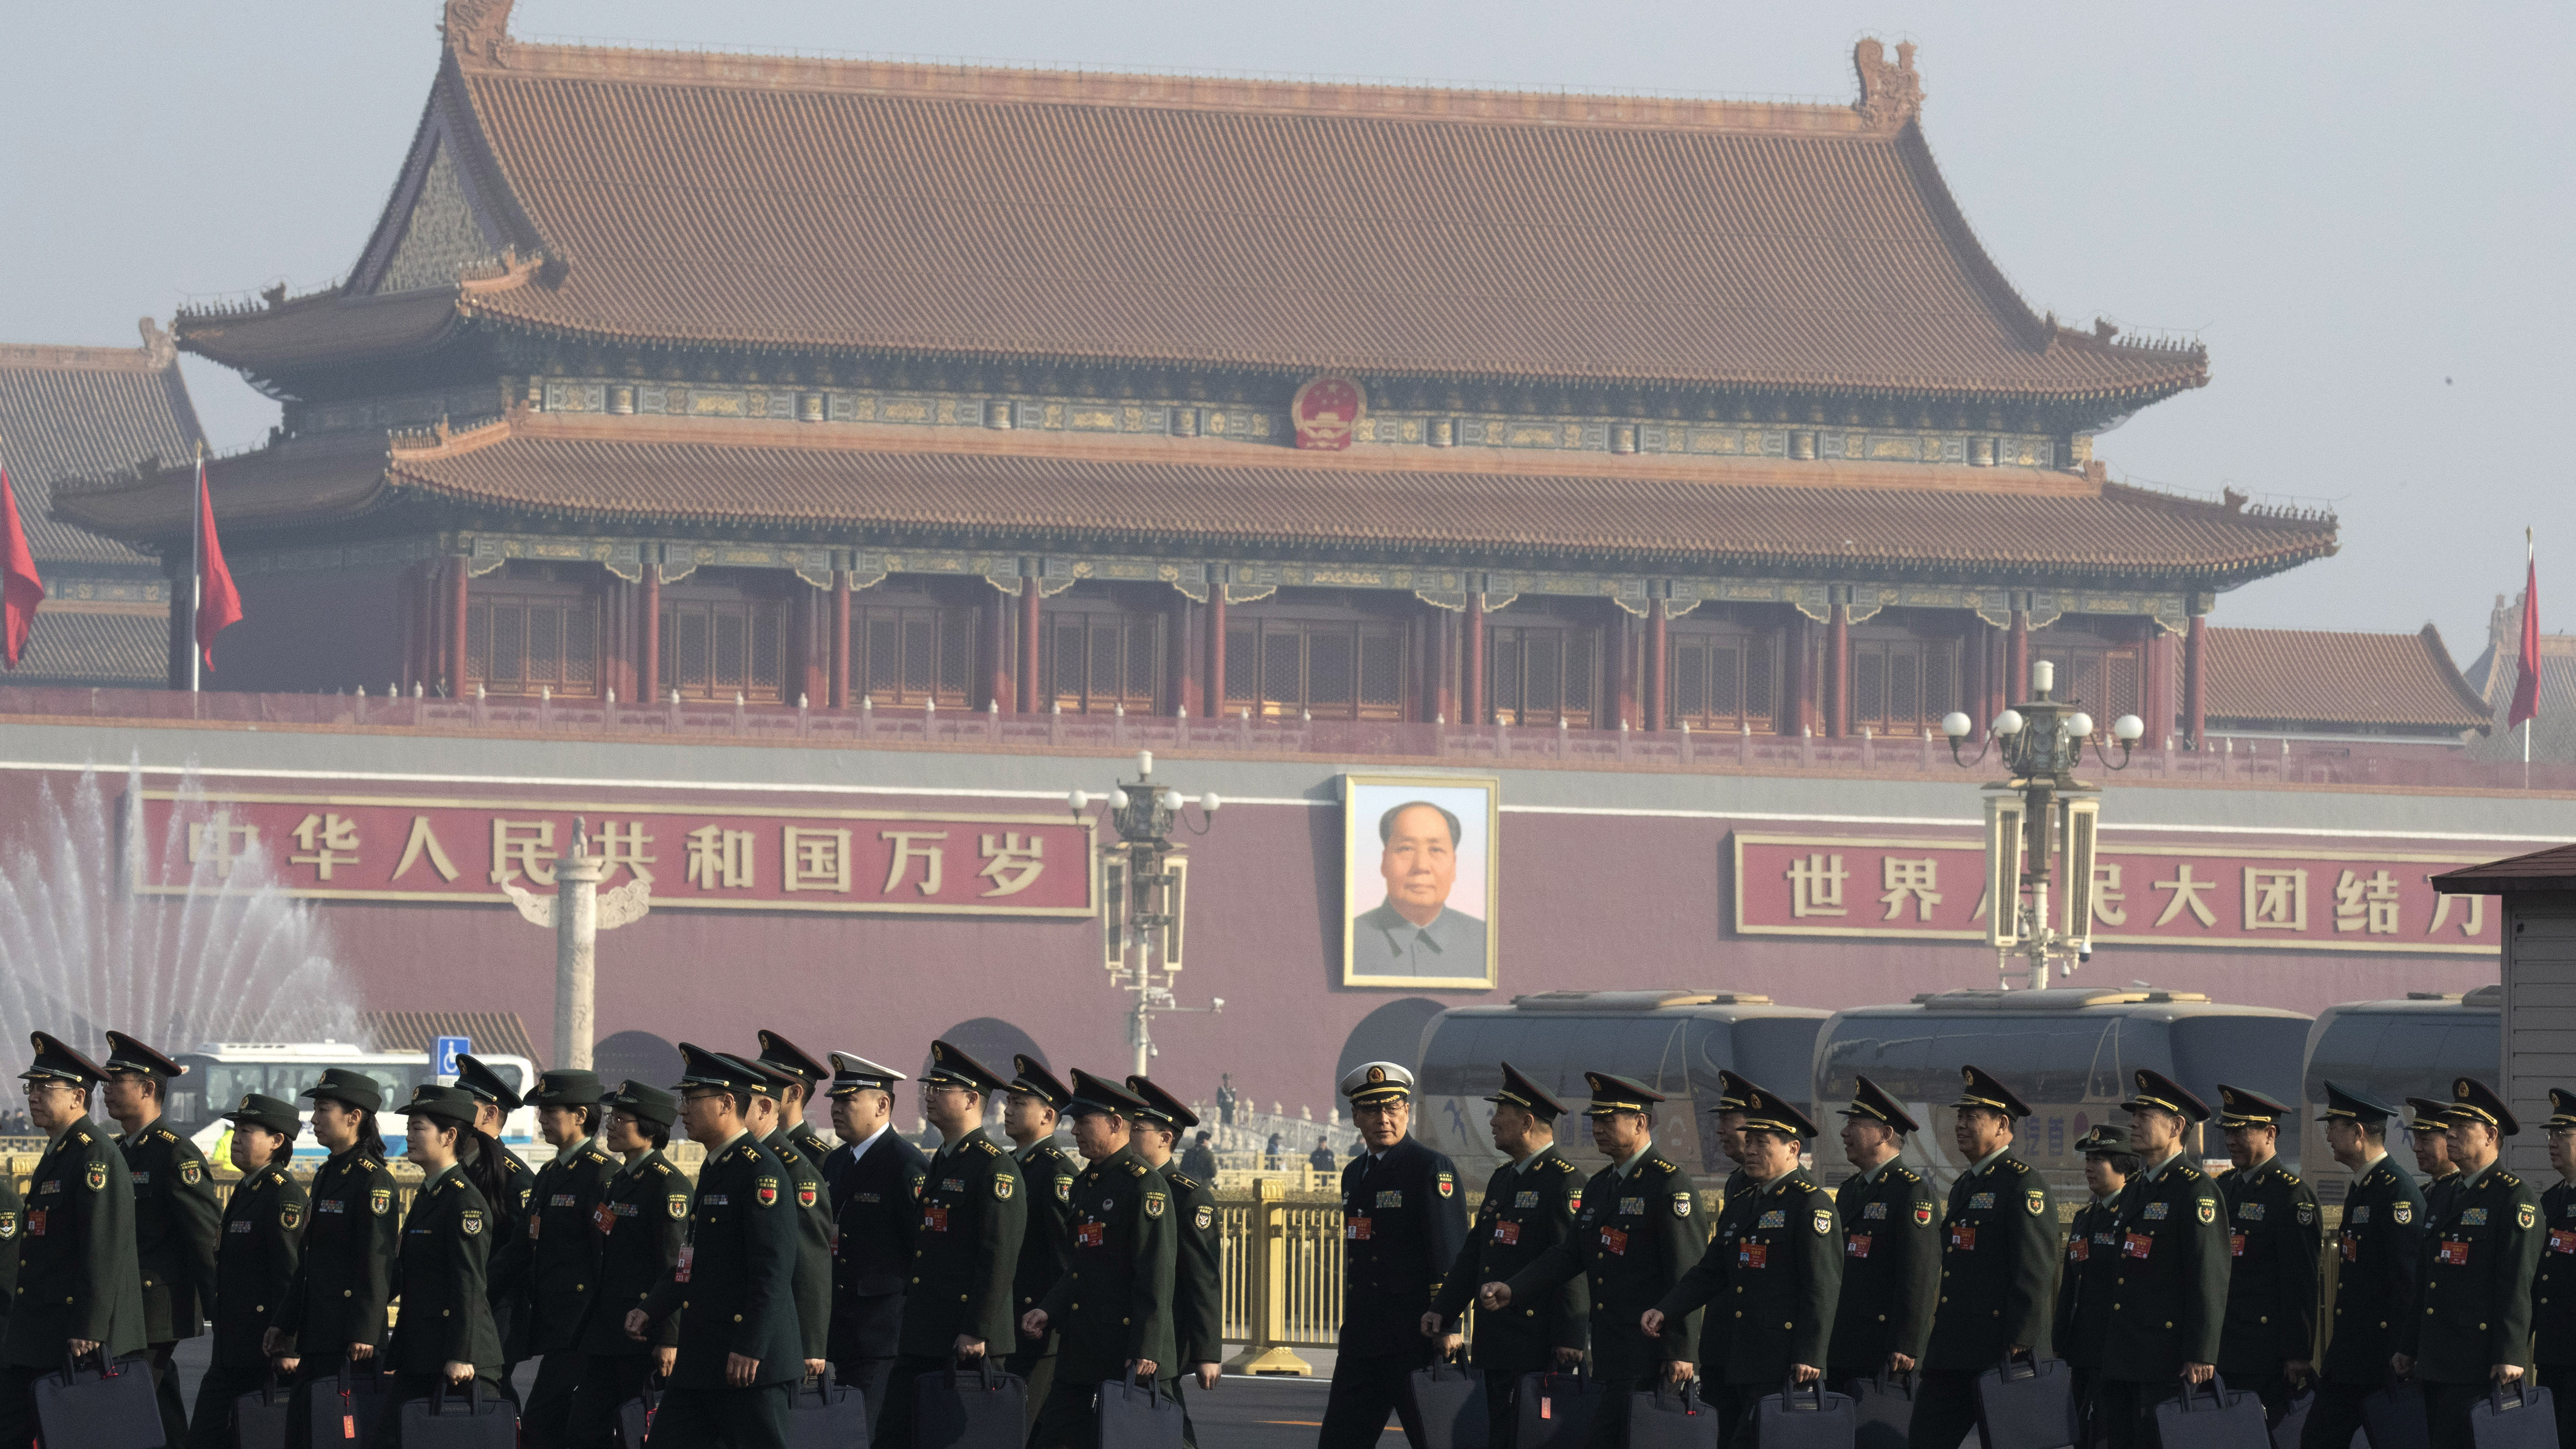 Chinese military delegates arrive for the National People's Congress in Beijing last March. The growing friction between the U.S. and China, combined with the rapid rise of China's economy and its military, has stirred a debate about whether the U.S. and China are headed toward a Cold War.